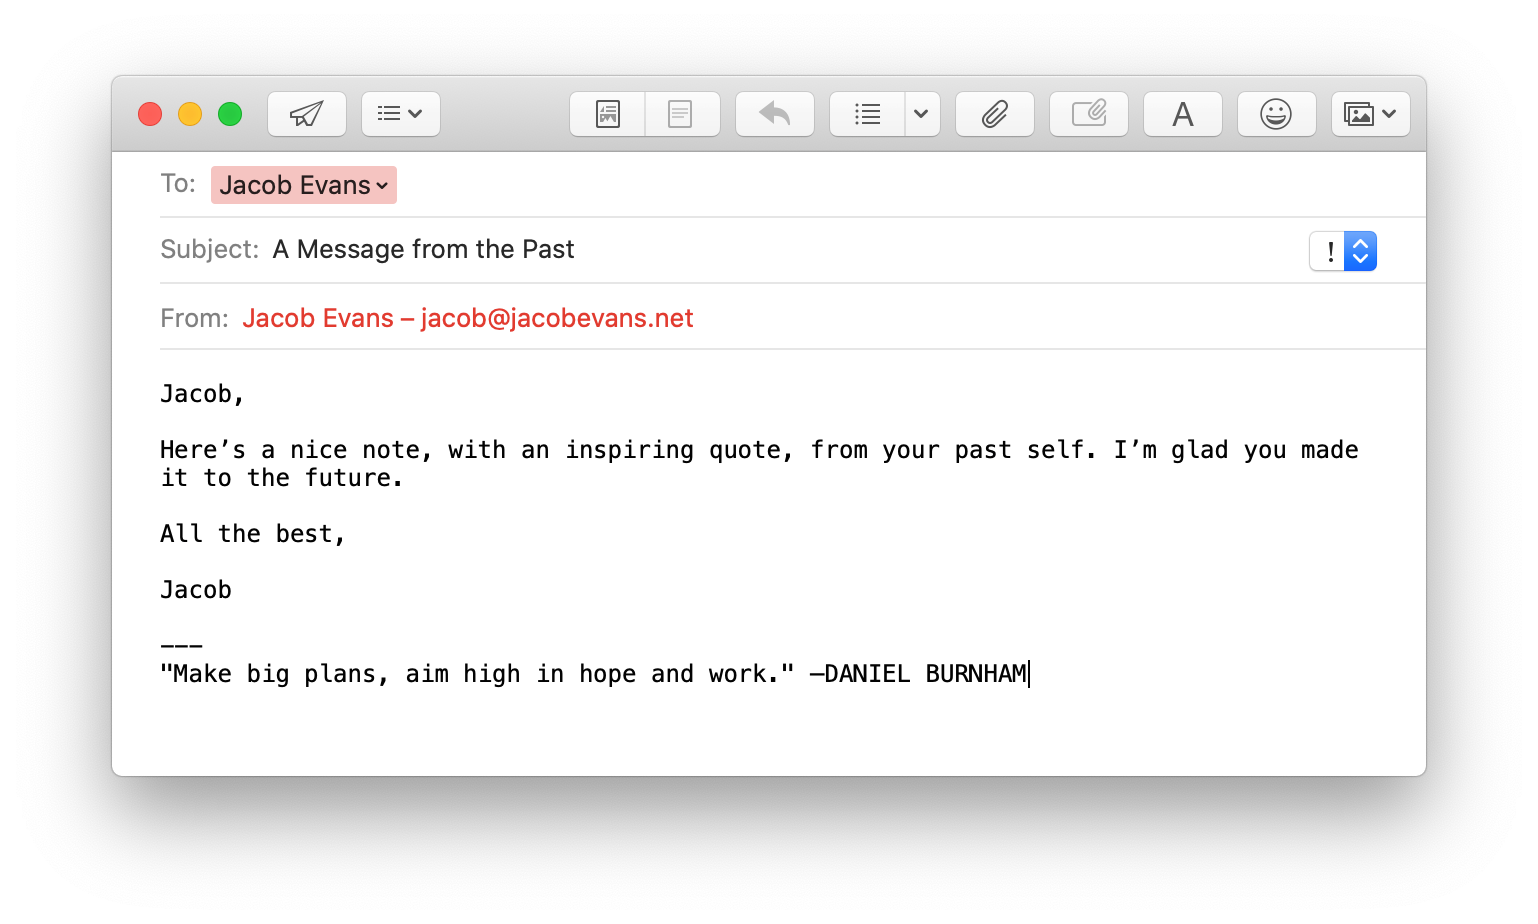 Example email with signature containing a random quote.